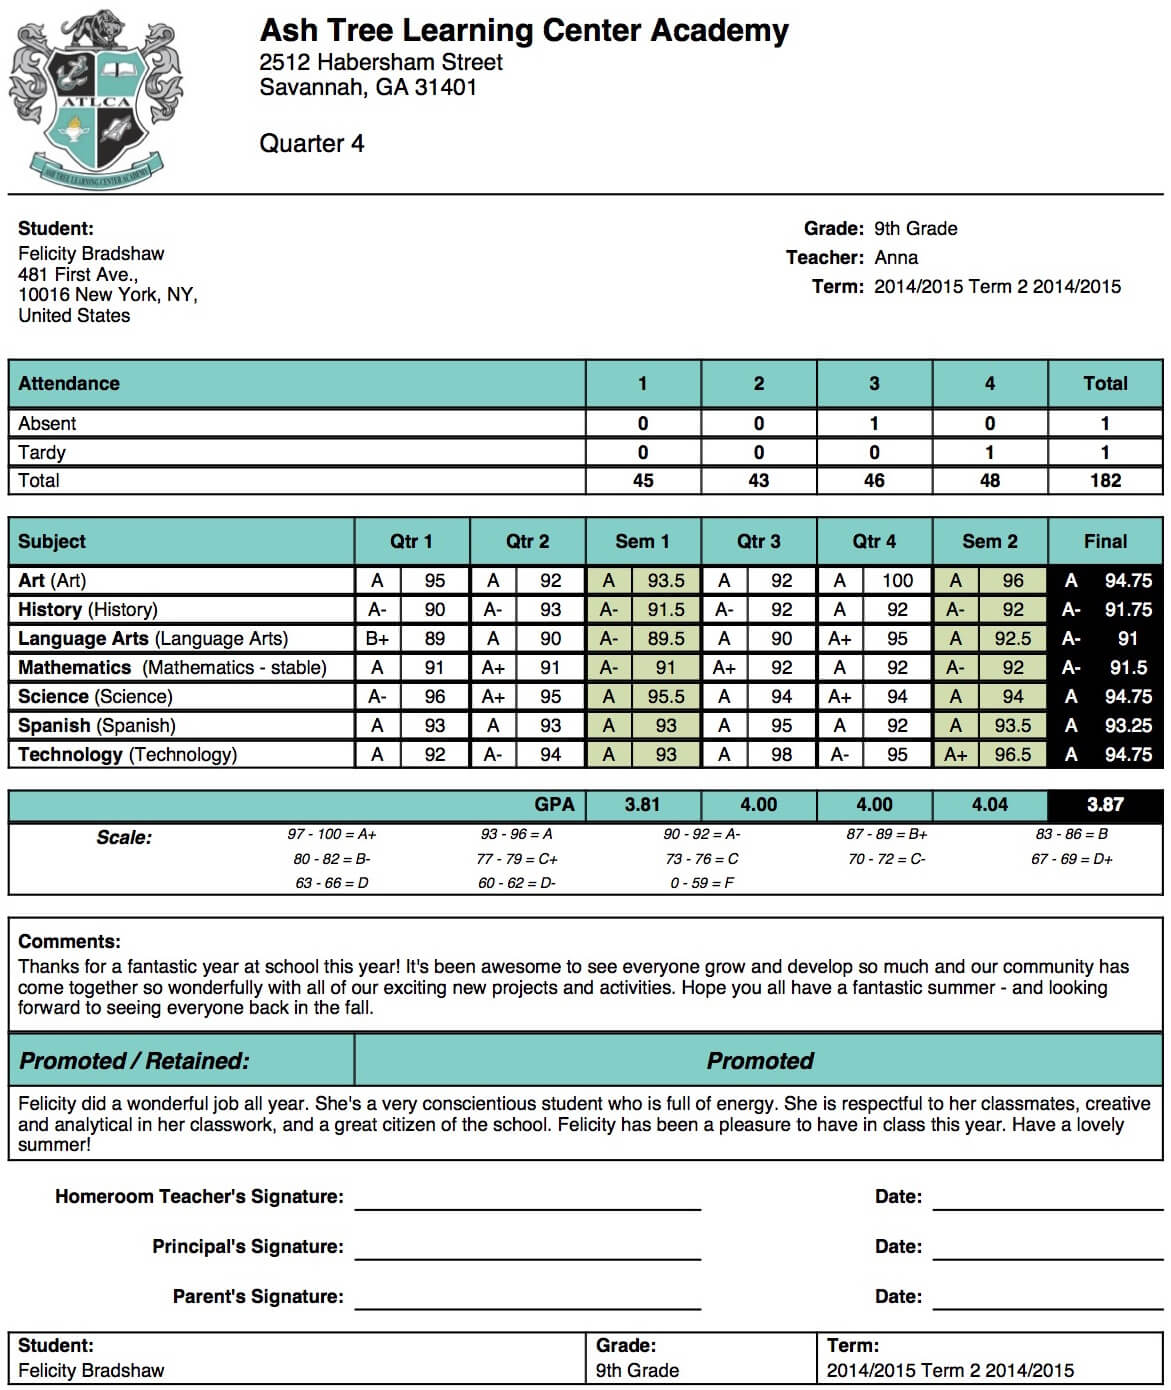 Ash Tree Learning Center Academy Report Card Template Regarding Report Card Template Middle School